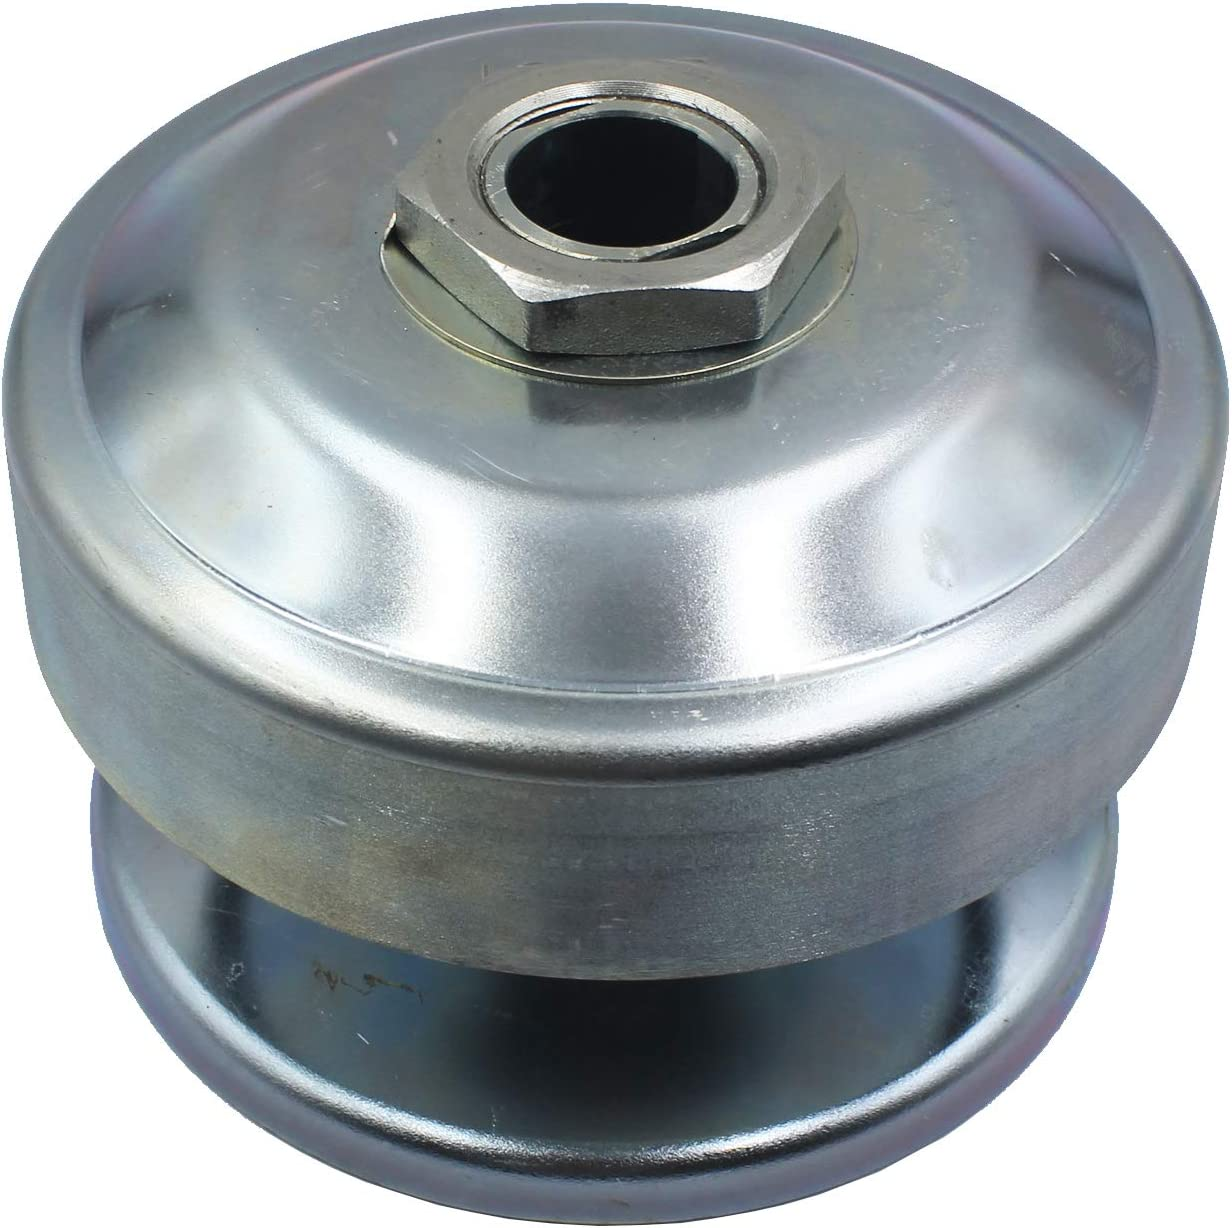 """LAFORMO 1"""" Bore 40 Series Go Kart Torque Converter Driver Pulley Clutch Fits 8-18 hp Engines, Replaces Comet 40D or 40/44 Series Pulleys 203015, for Go Kart and Golf Cart Belt Drives"""